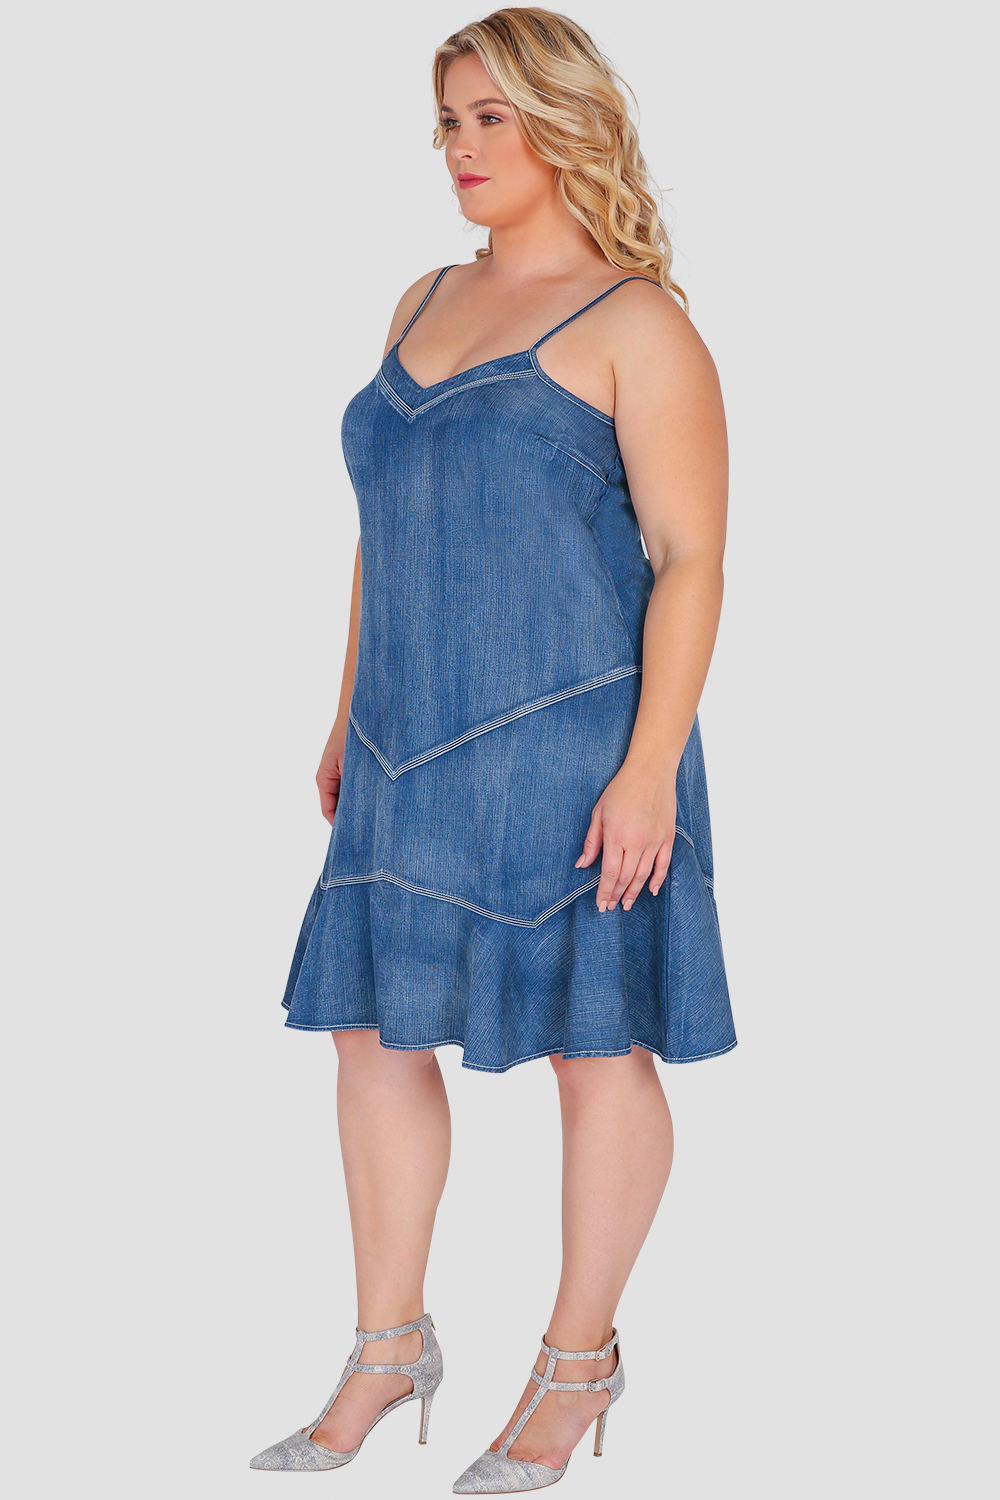 Standards & Practices Plus Size Women's Ruffled Denim Dress with Thin Straps